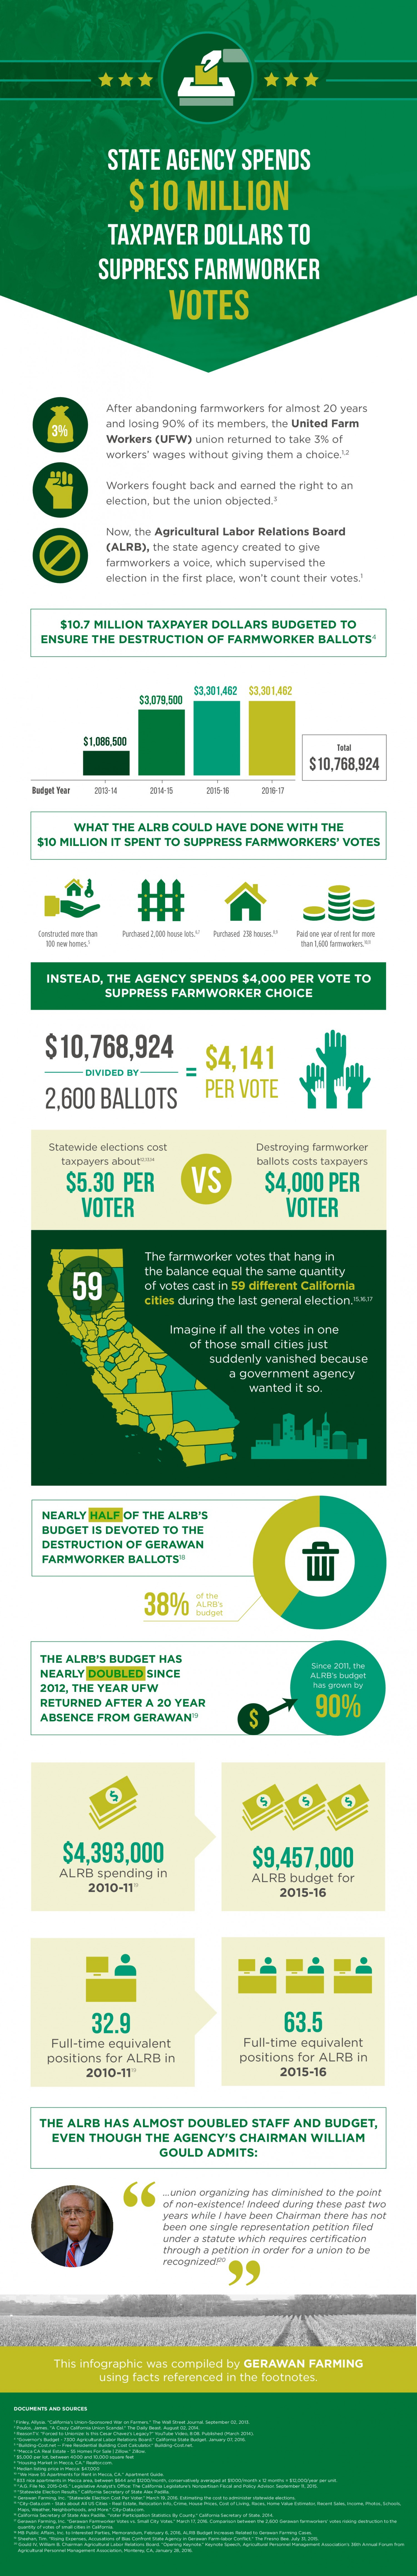 State Agency Spends $10 Million Taxpayer Dollars to Suppress Farmworker Votes Infographic